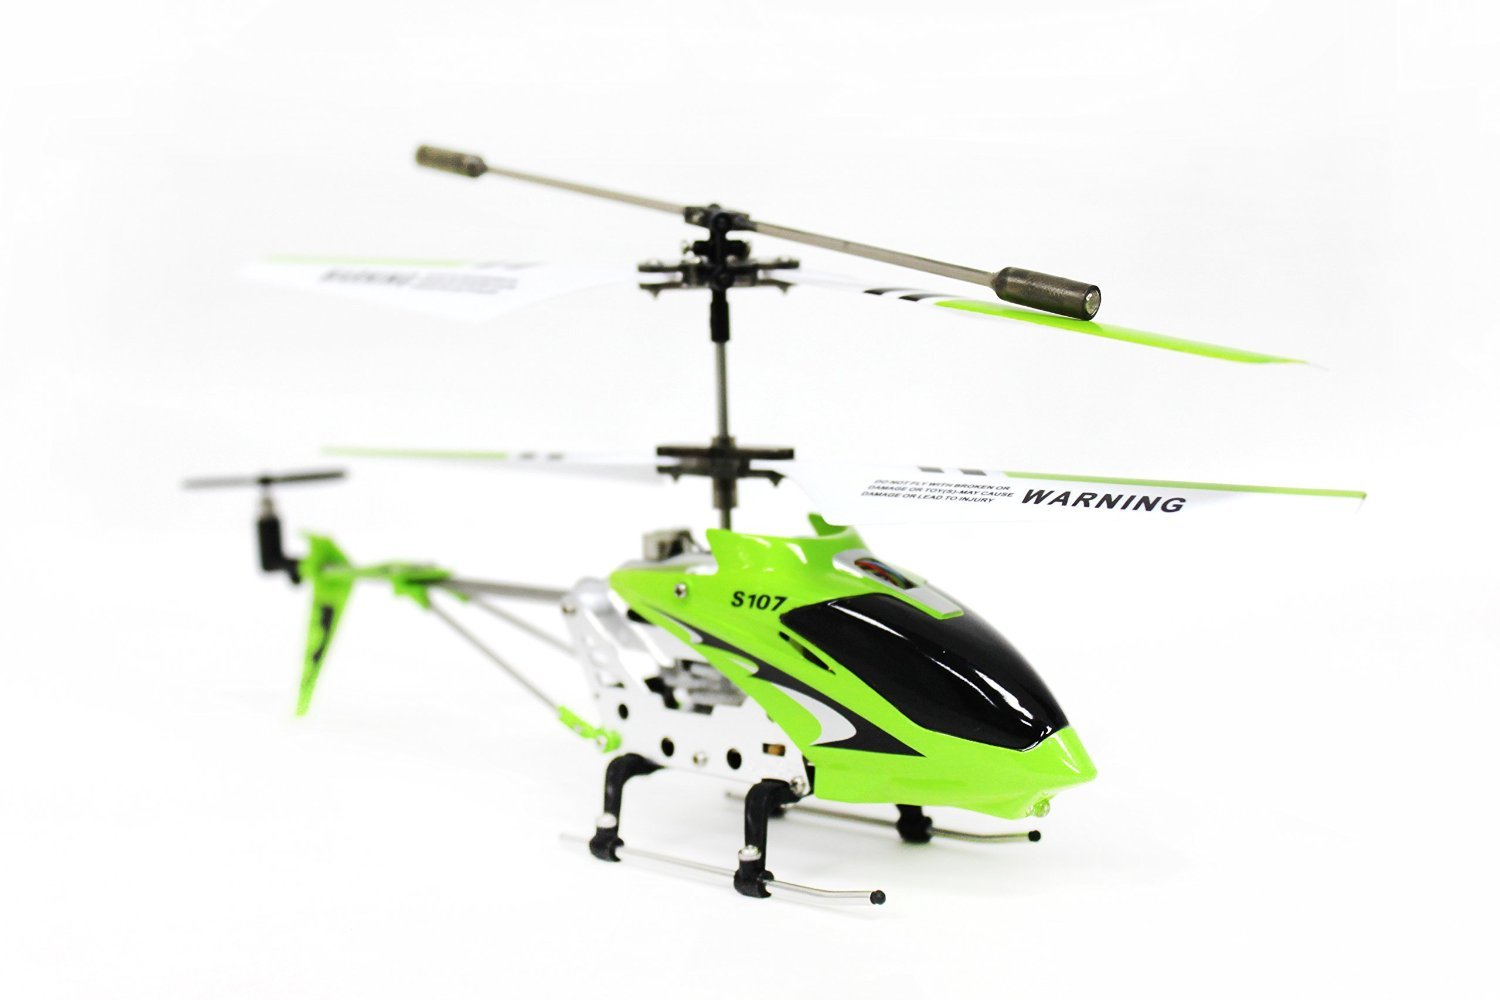 rc helicopter gyro wiring diagram rc gyro sensor wiring plc Wiring Diagrams  plc Wiring Diagrams